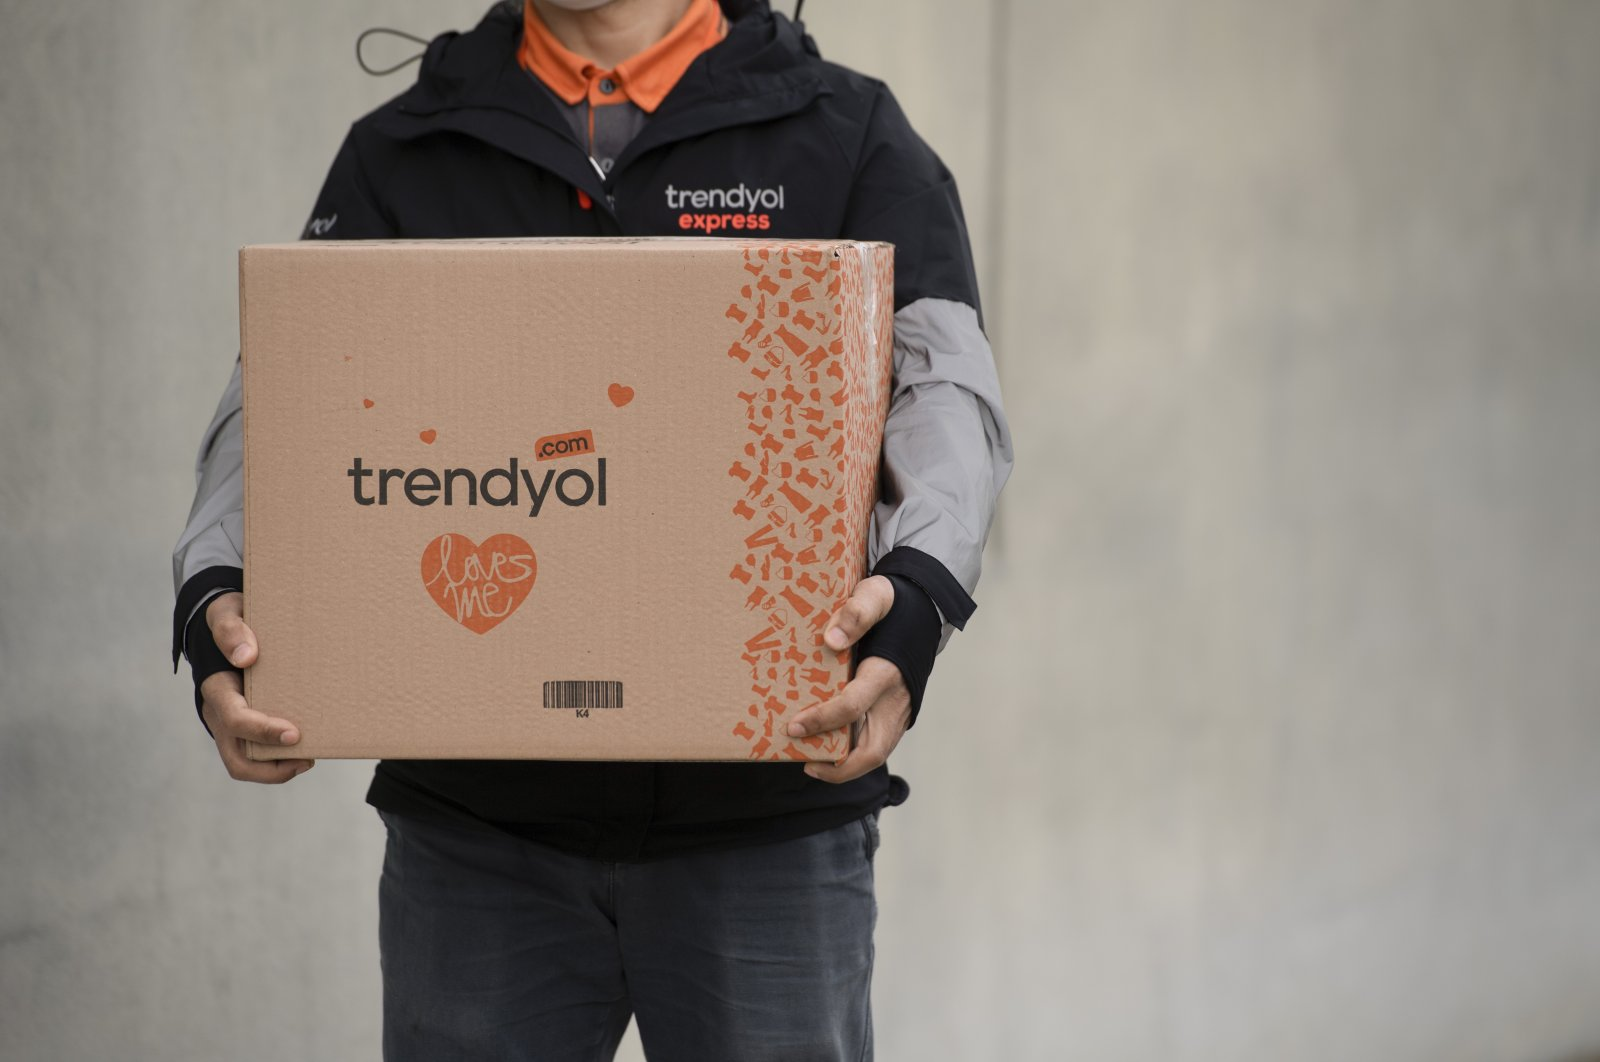 A Trendyol worker holds a package in this undated photo. (Courtesy of Trendyol)